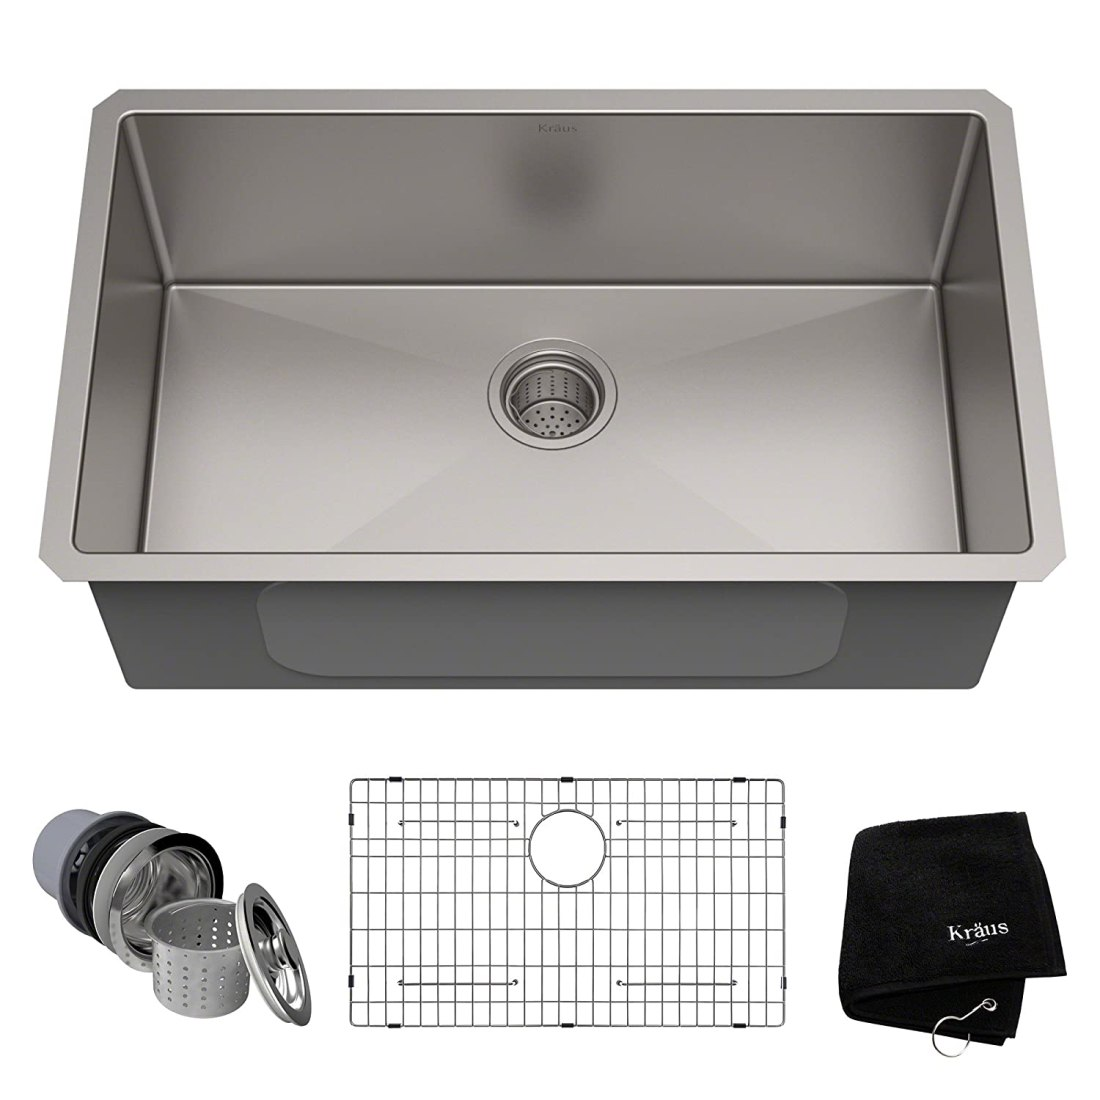 Best Kitchen Sink: 10 Best Stainless Steel Kitchen Sinks Reviews 2019